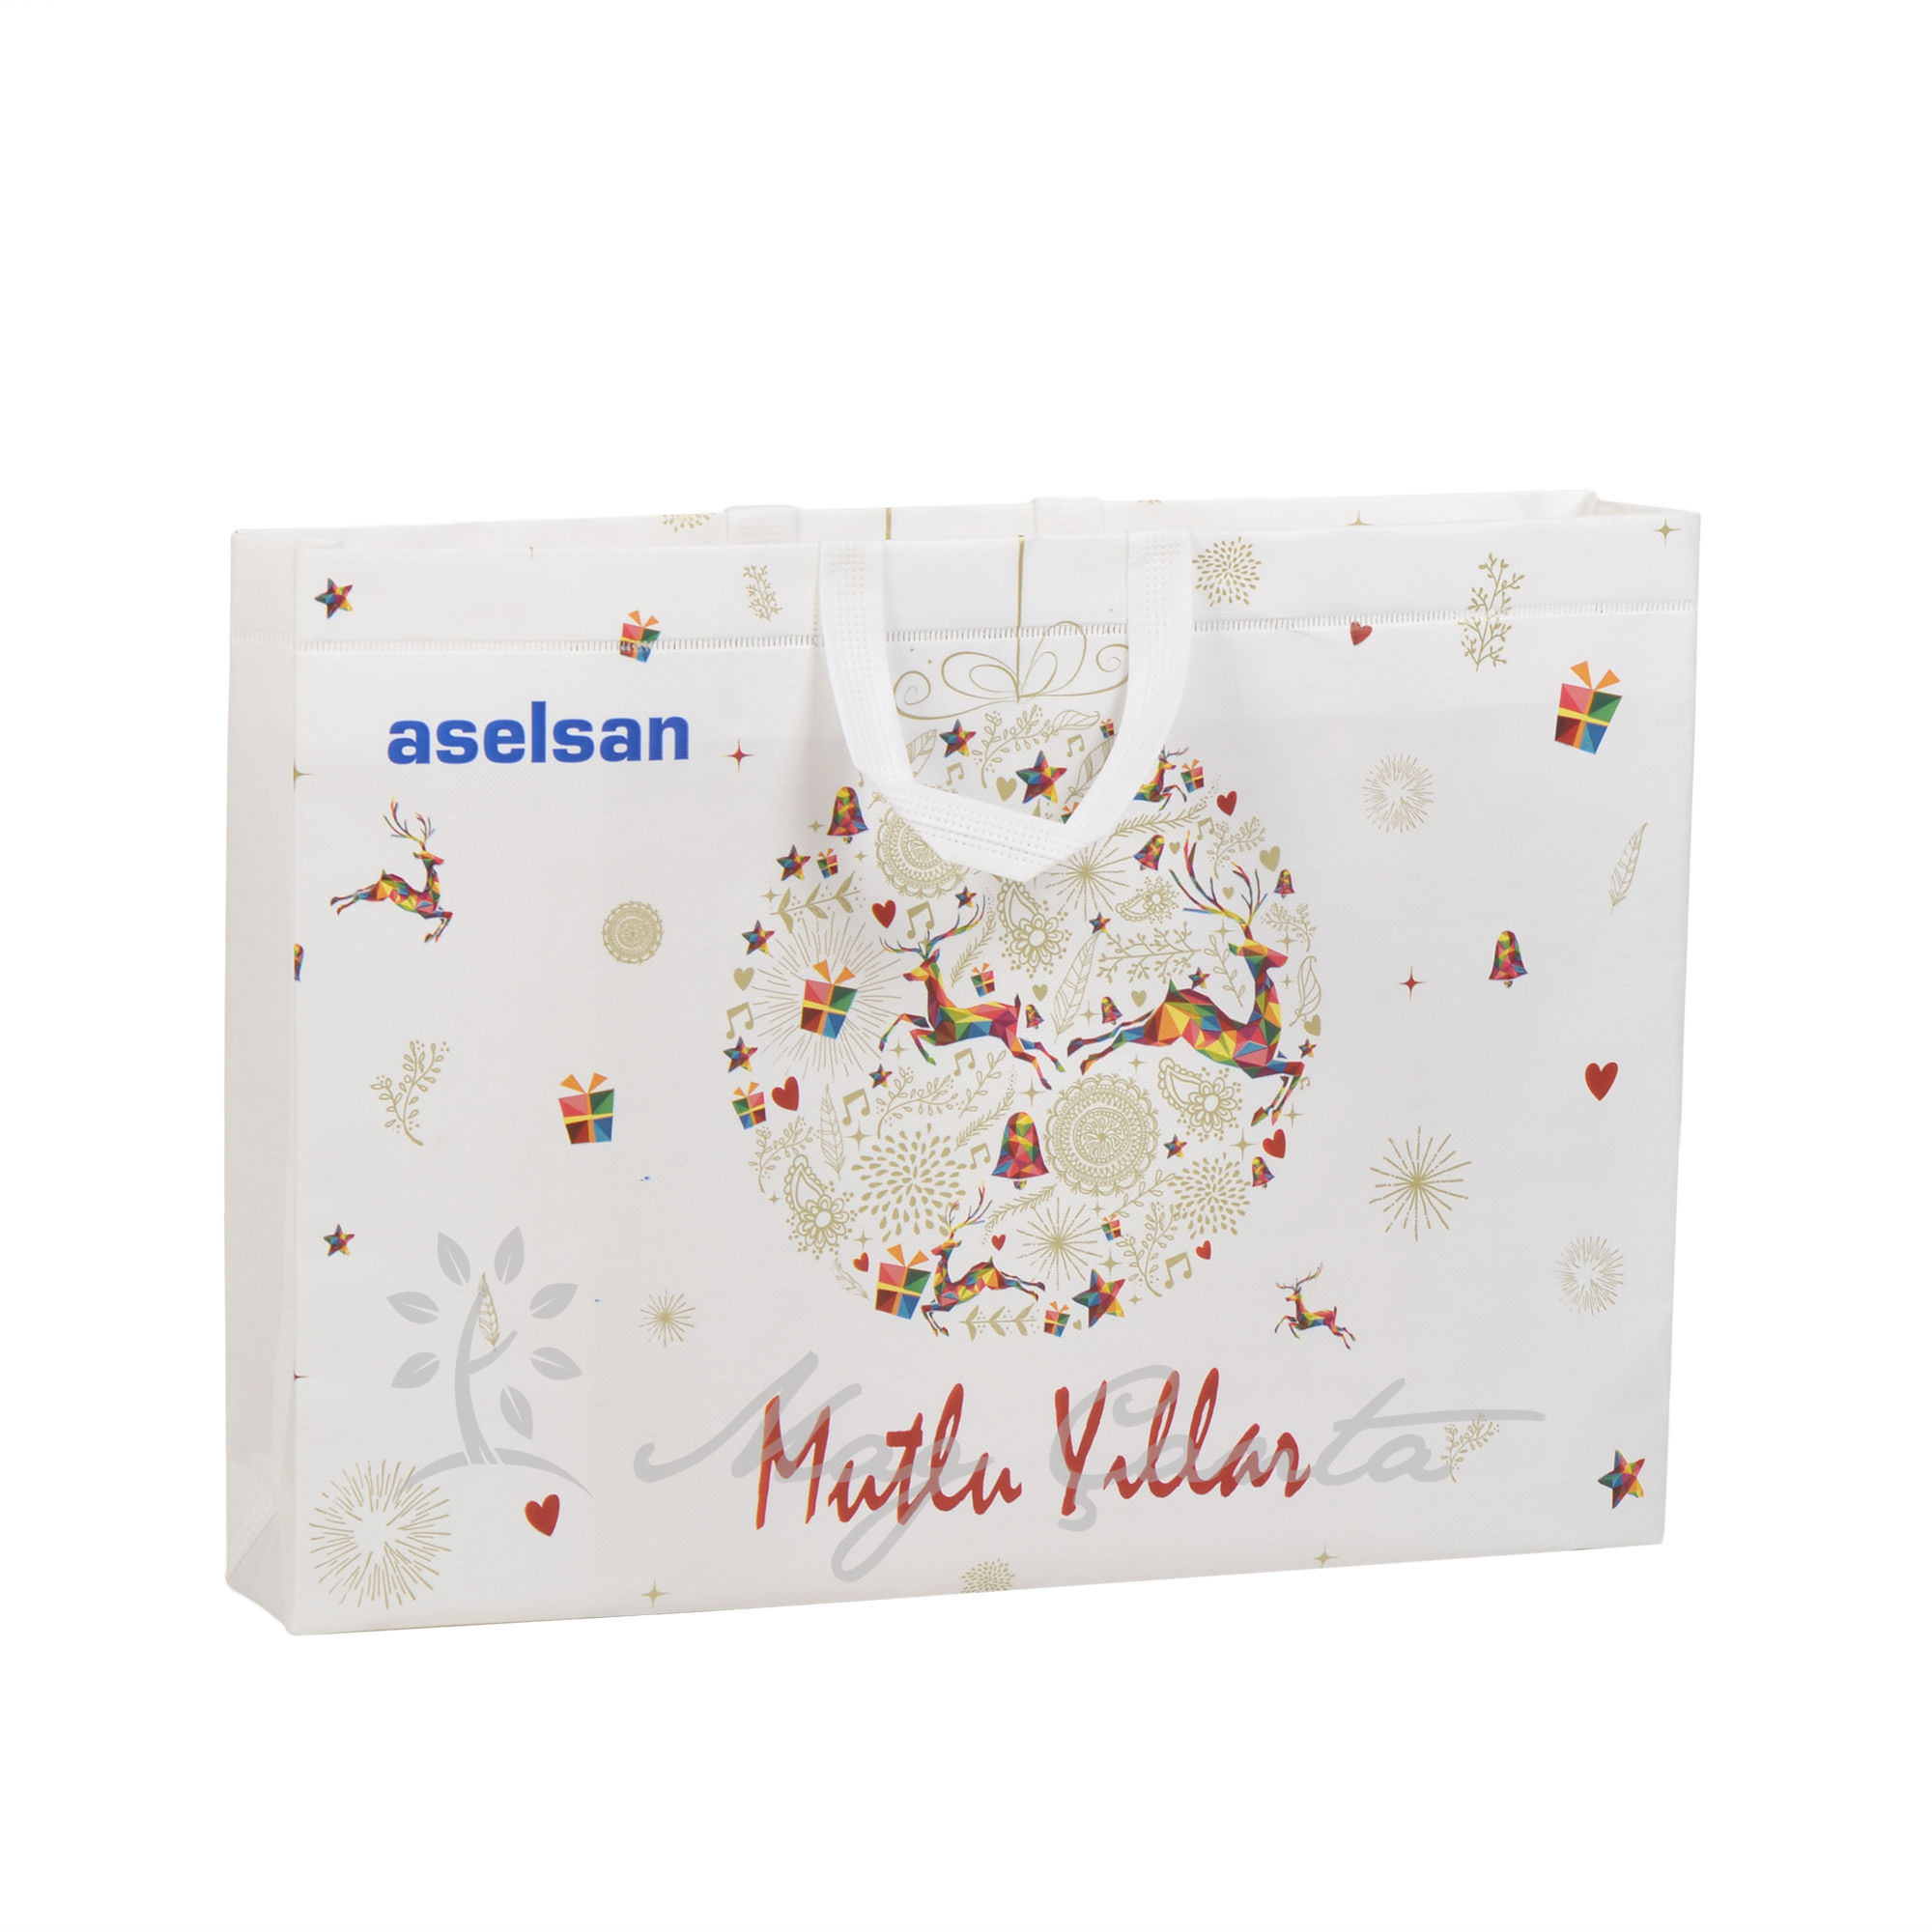 Laminated Aselsan Bag